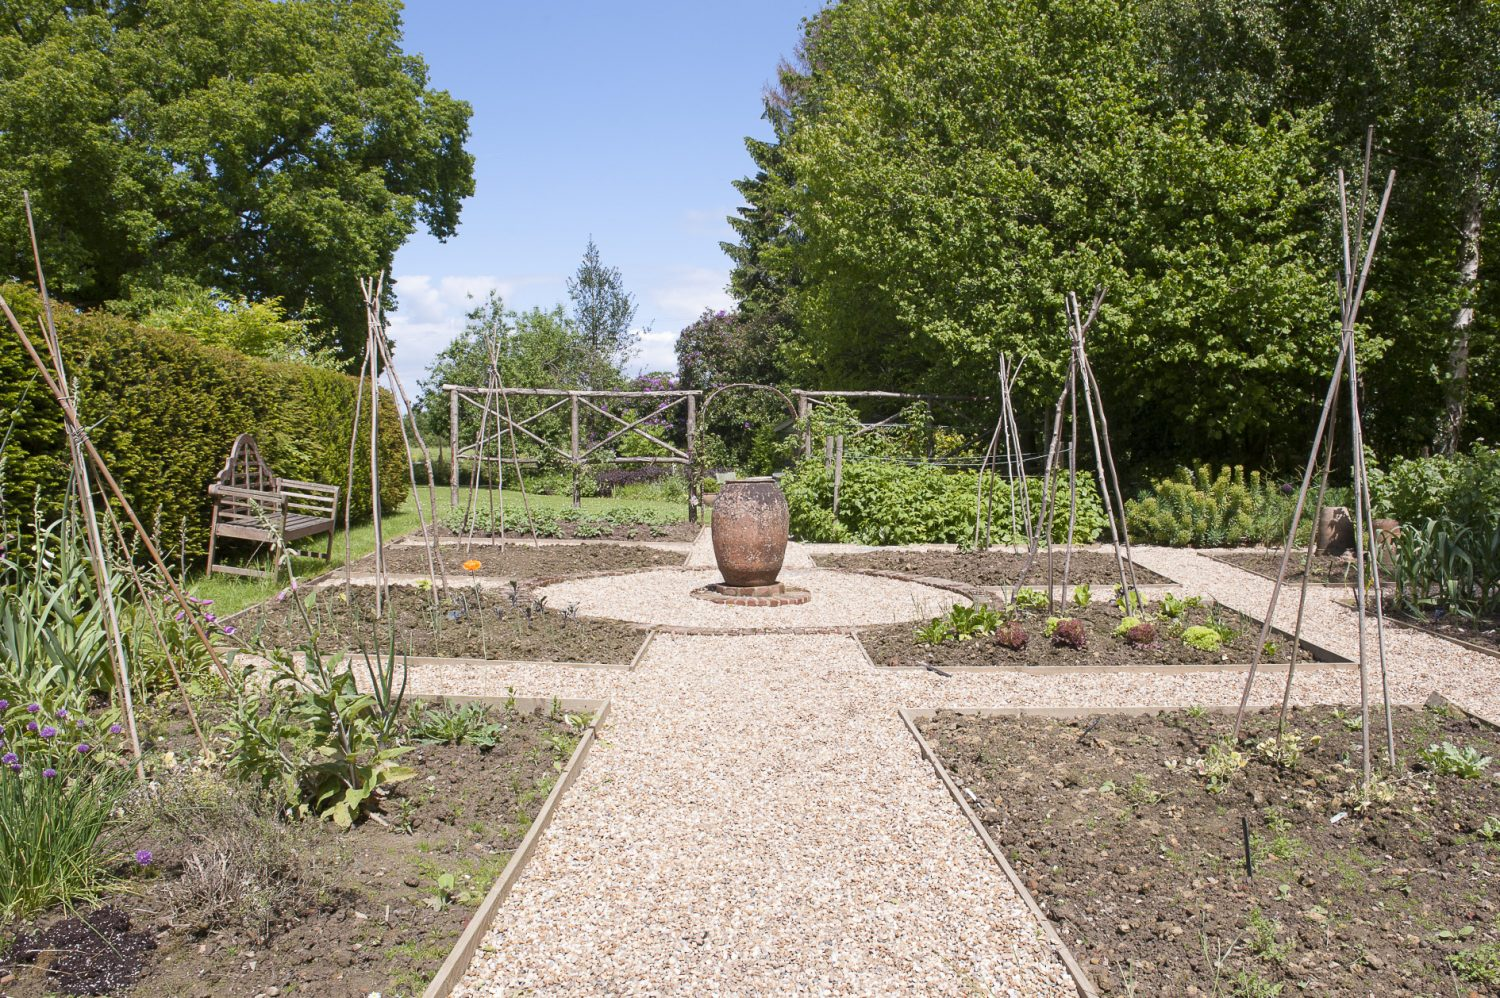 In the recently revamped vegetable garden raised beds are divided by smart gravel paths